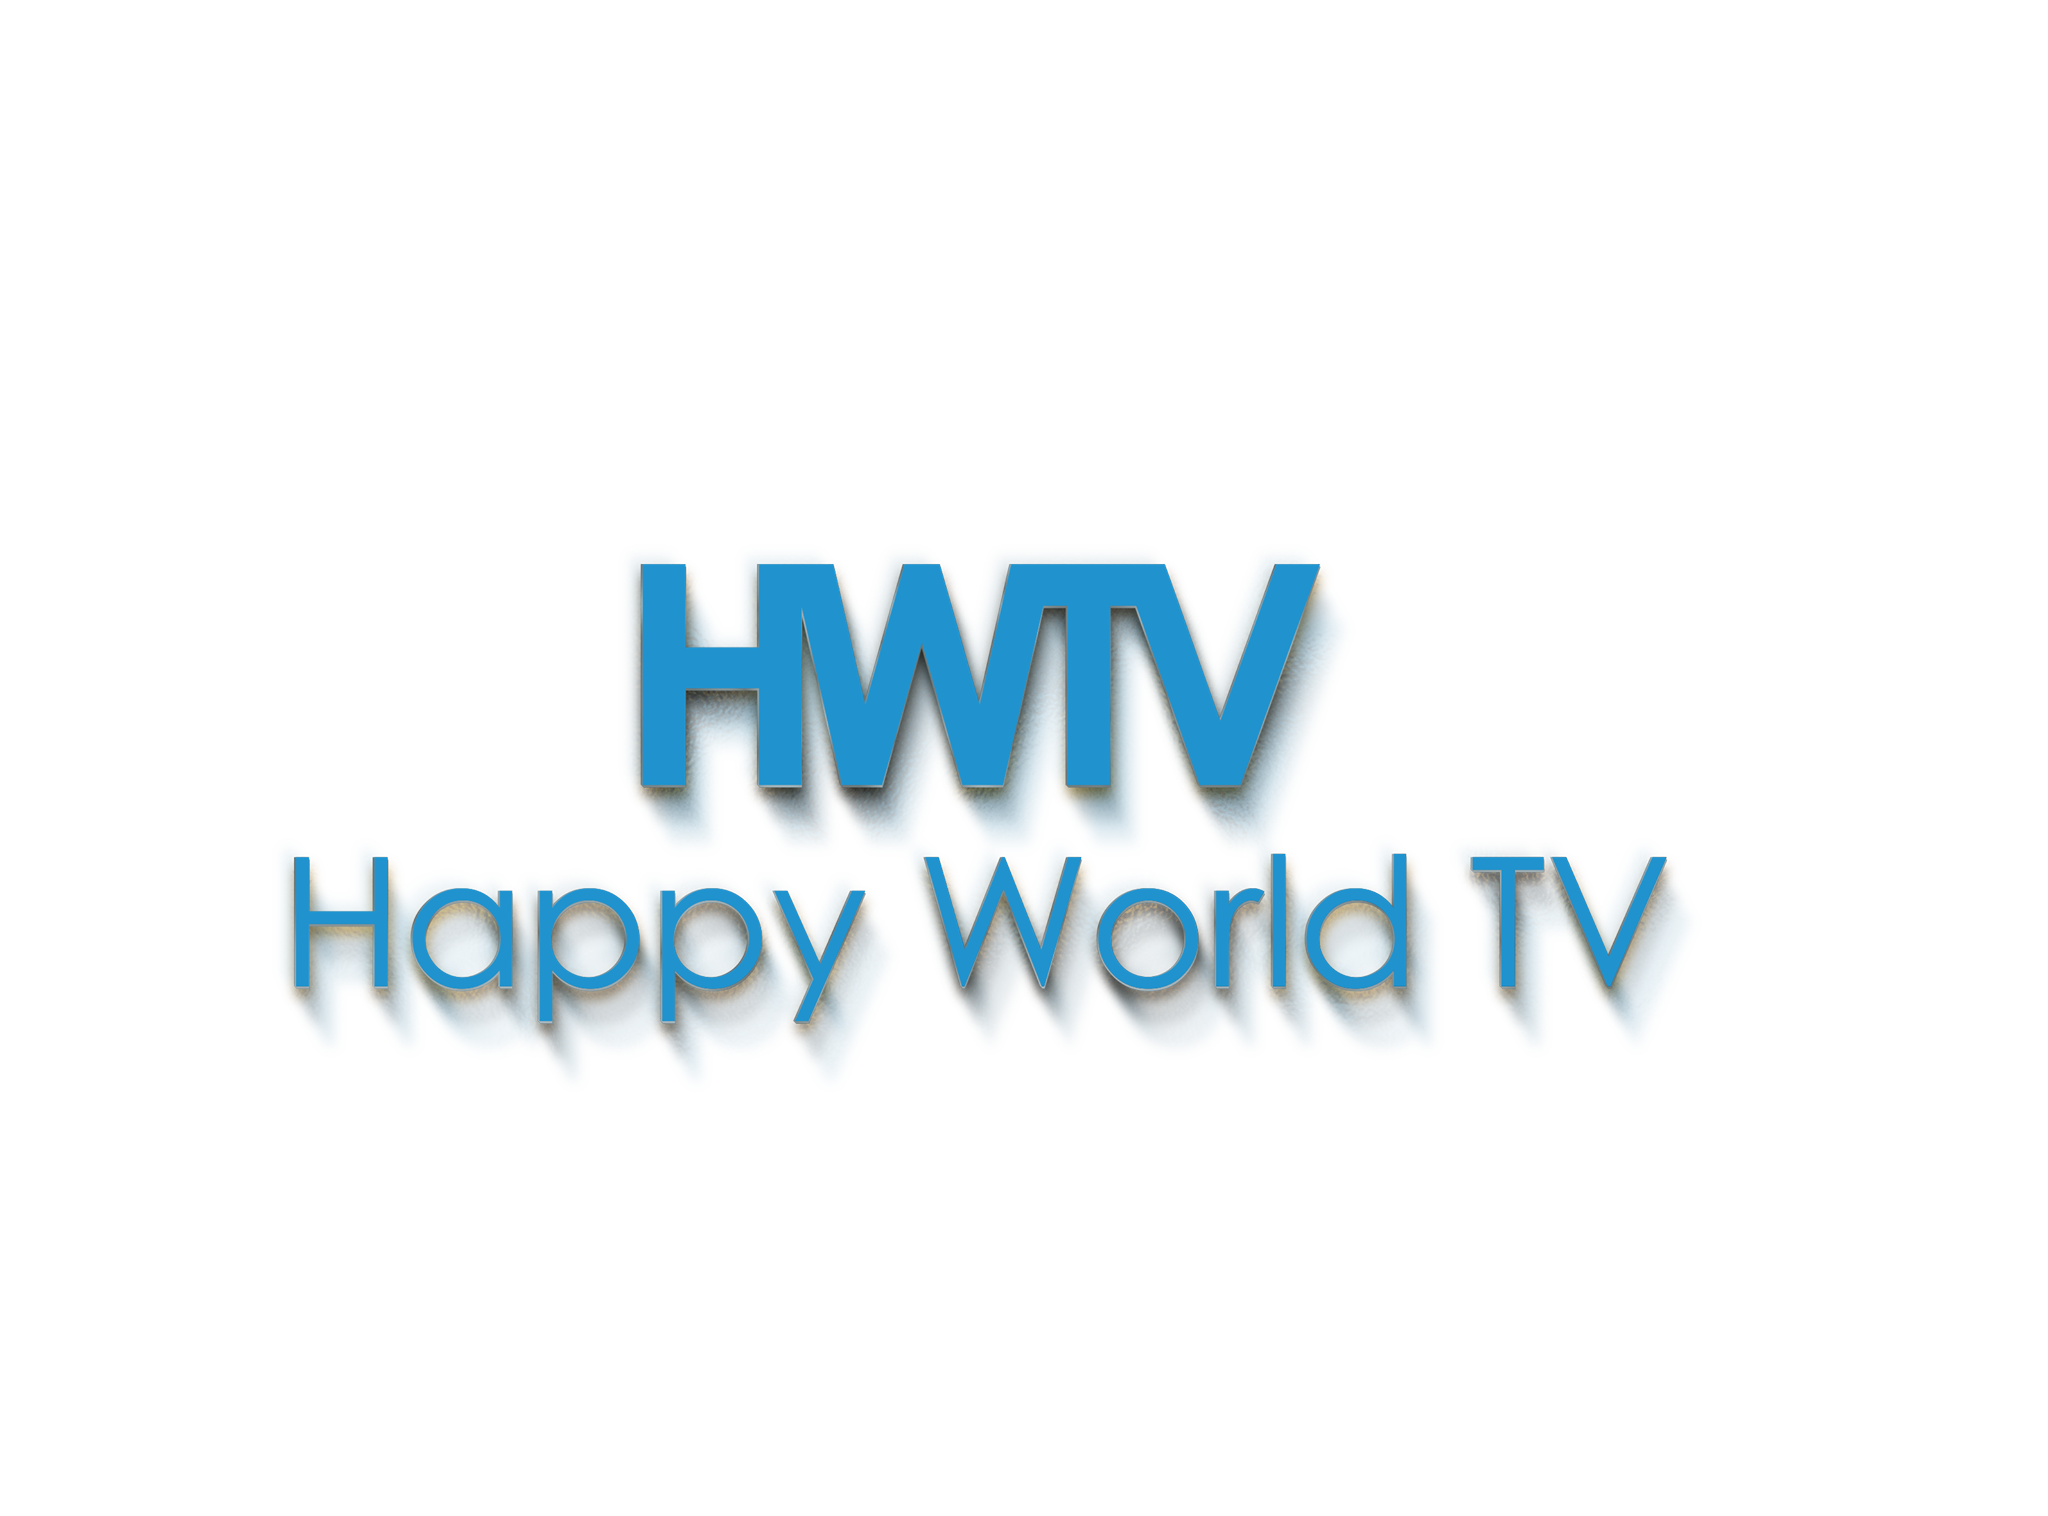 Happy World TV